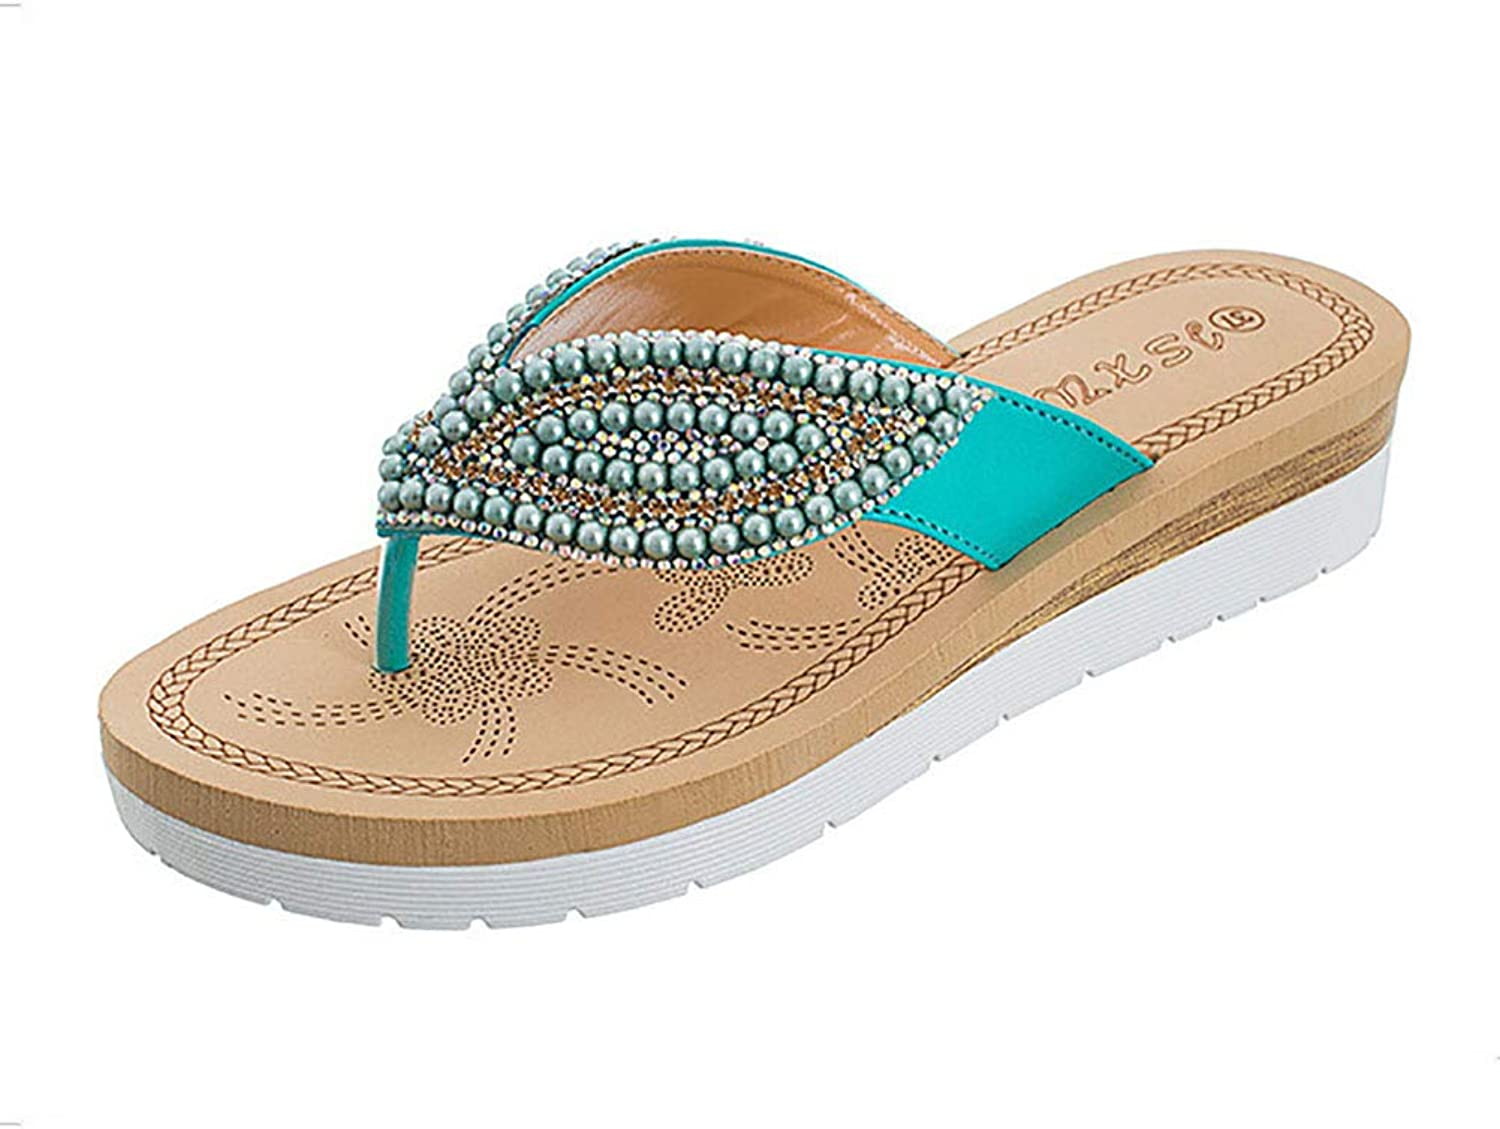 WL Women's Thong Slippers Bohemia Rhinestone Flip Flops Sandals Comfy Lightweight Summer shoes for Beach Pool Bathroom,36-42